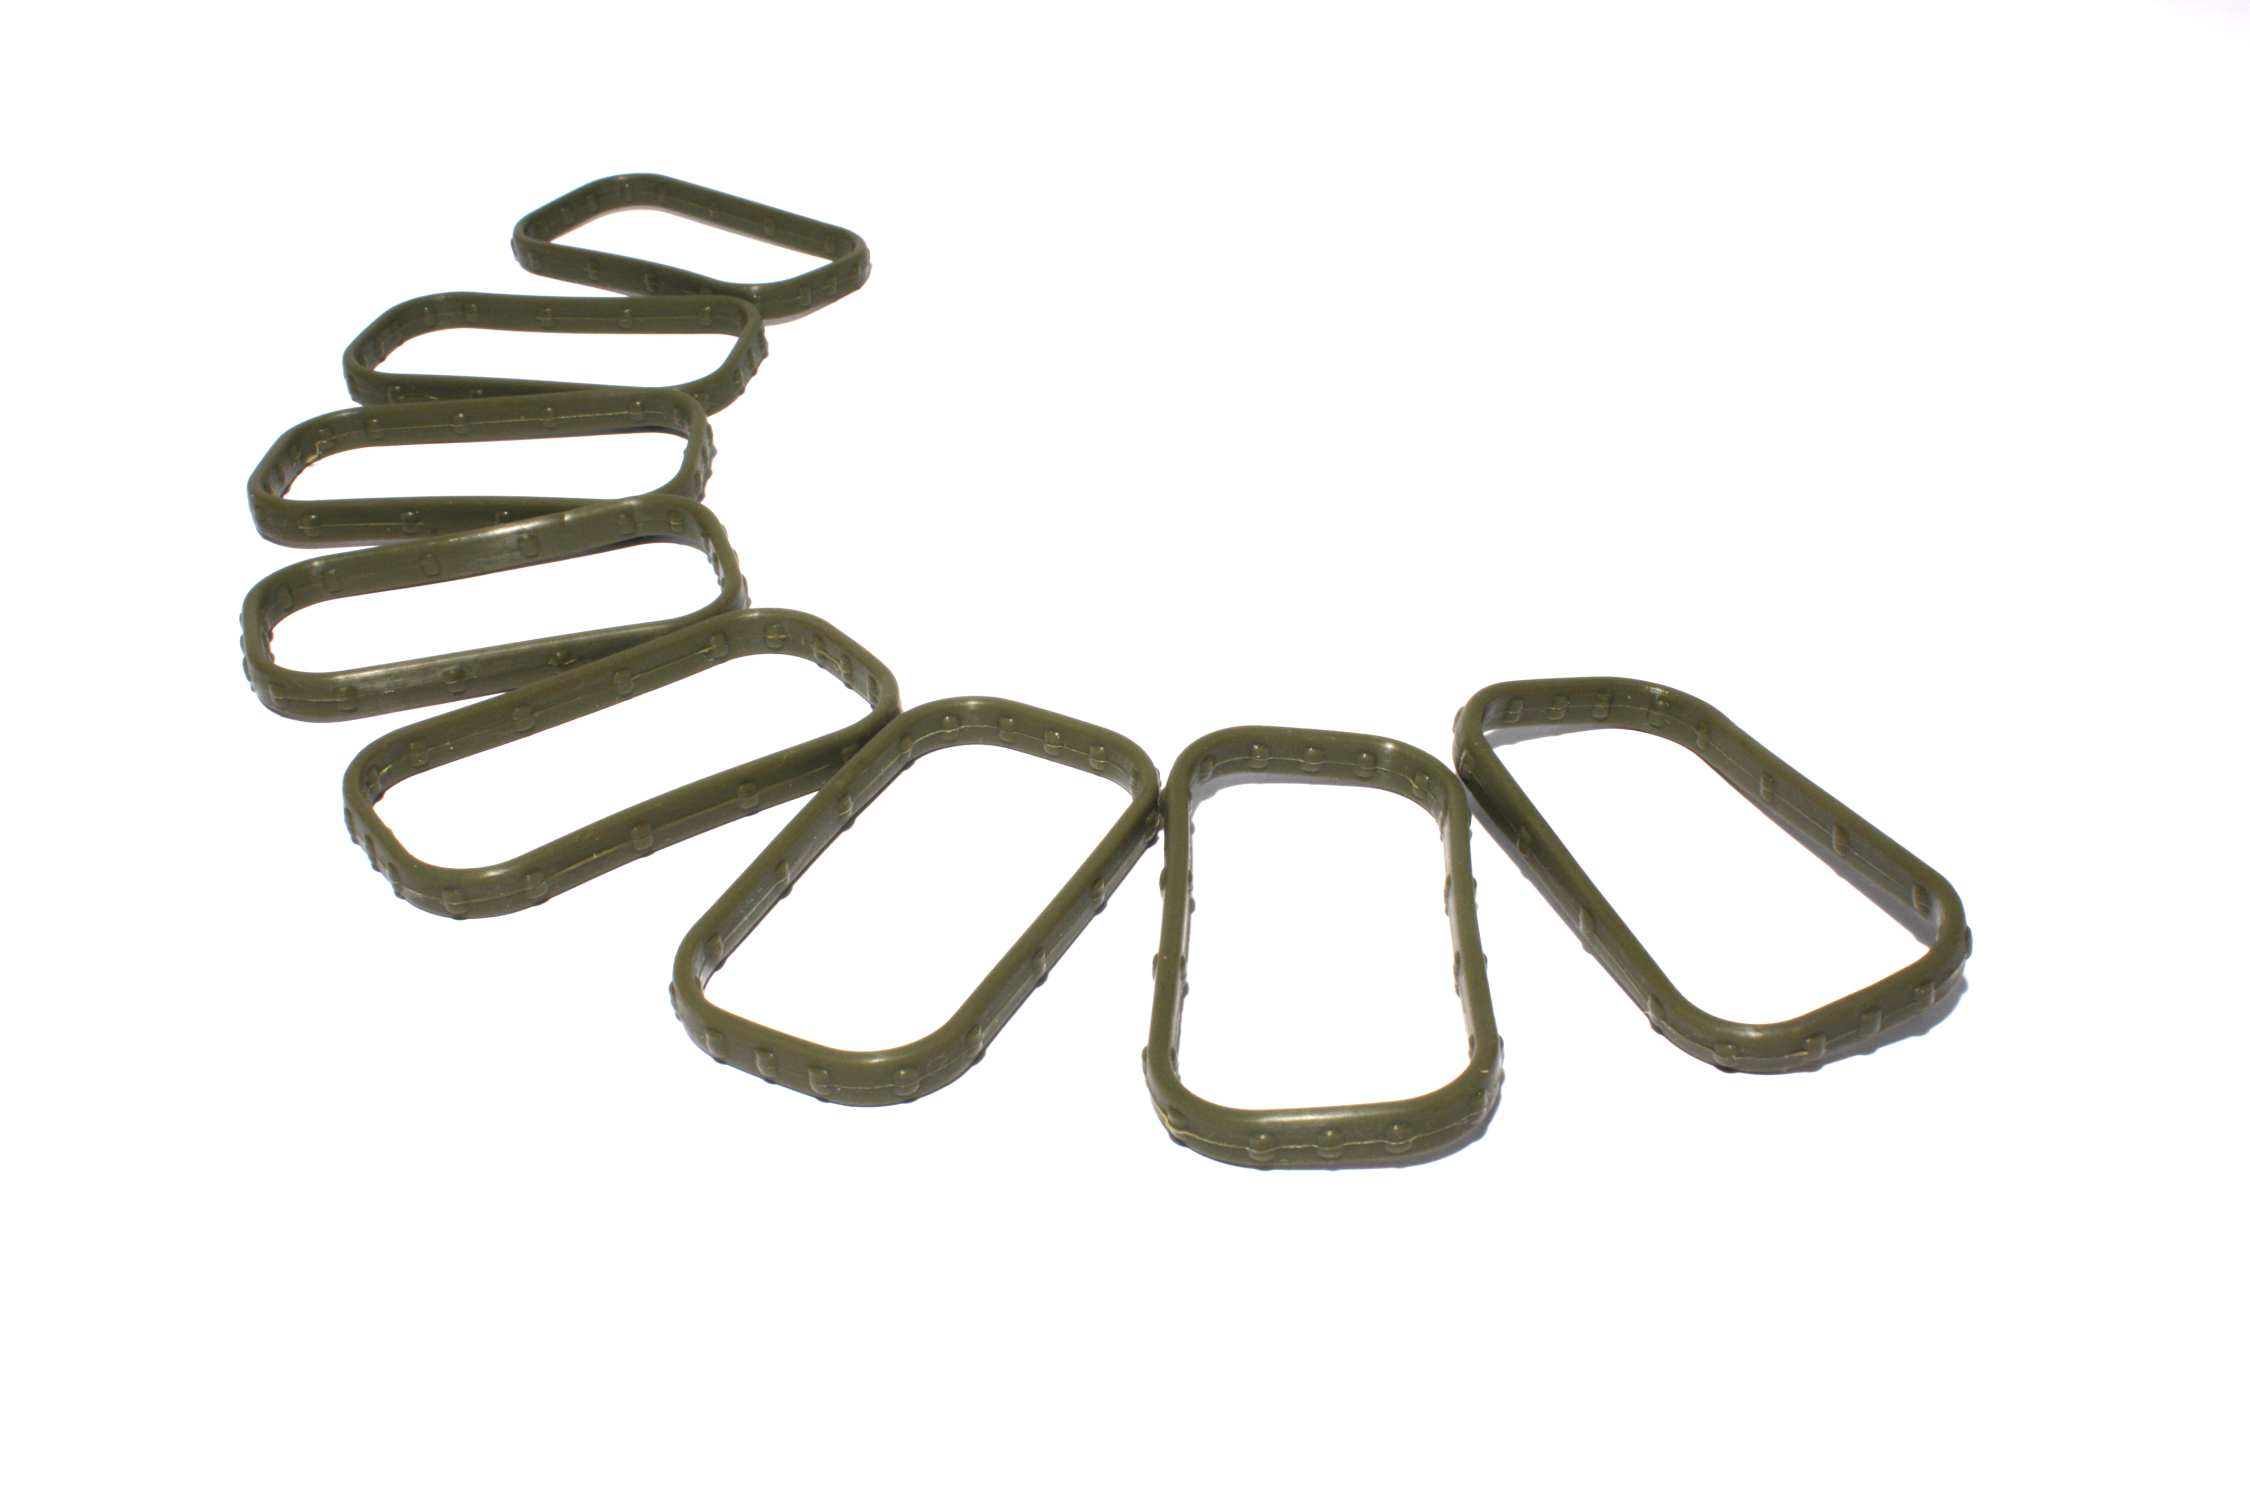 146003-8 Fast Intake Manifold Gasket For Use With GM LS-Series